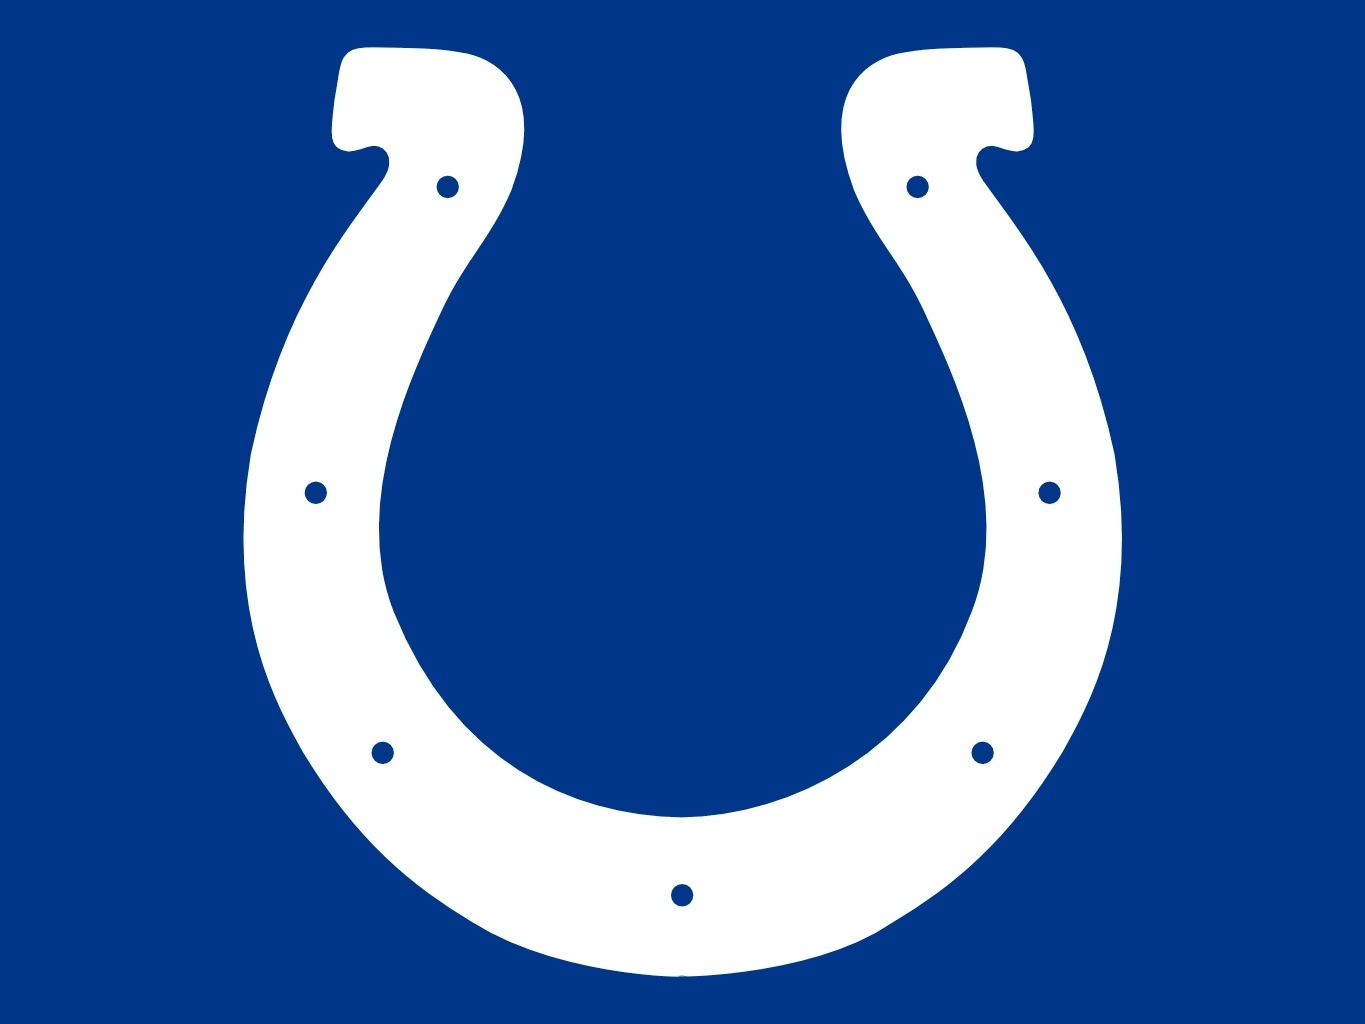 Indianapolis colts logo black and white clipart clipart transparent Free Indianapolis Colts Cliparts, Download Free Clip Art, Free Clip ... clipart transparent